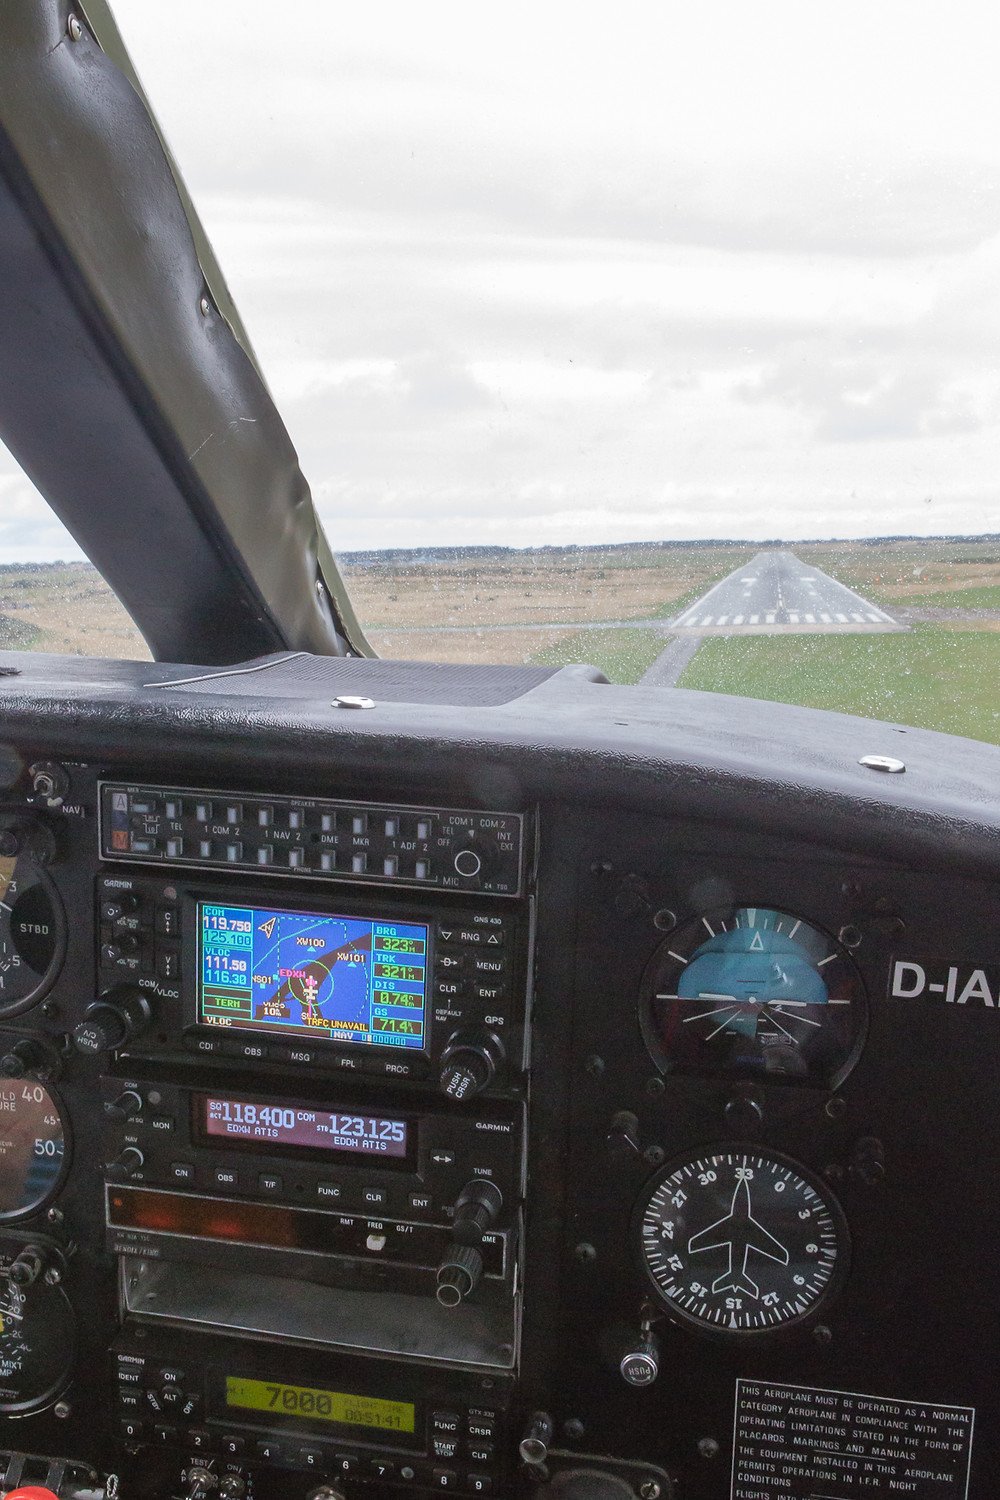 Coming in to land at Sylt